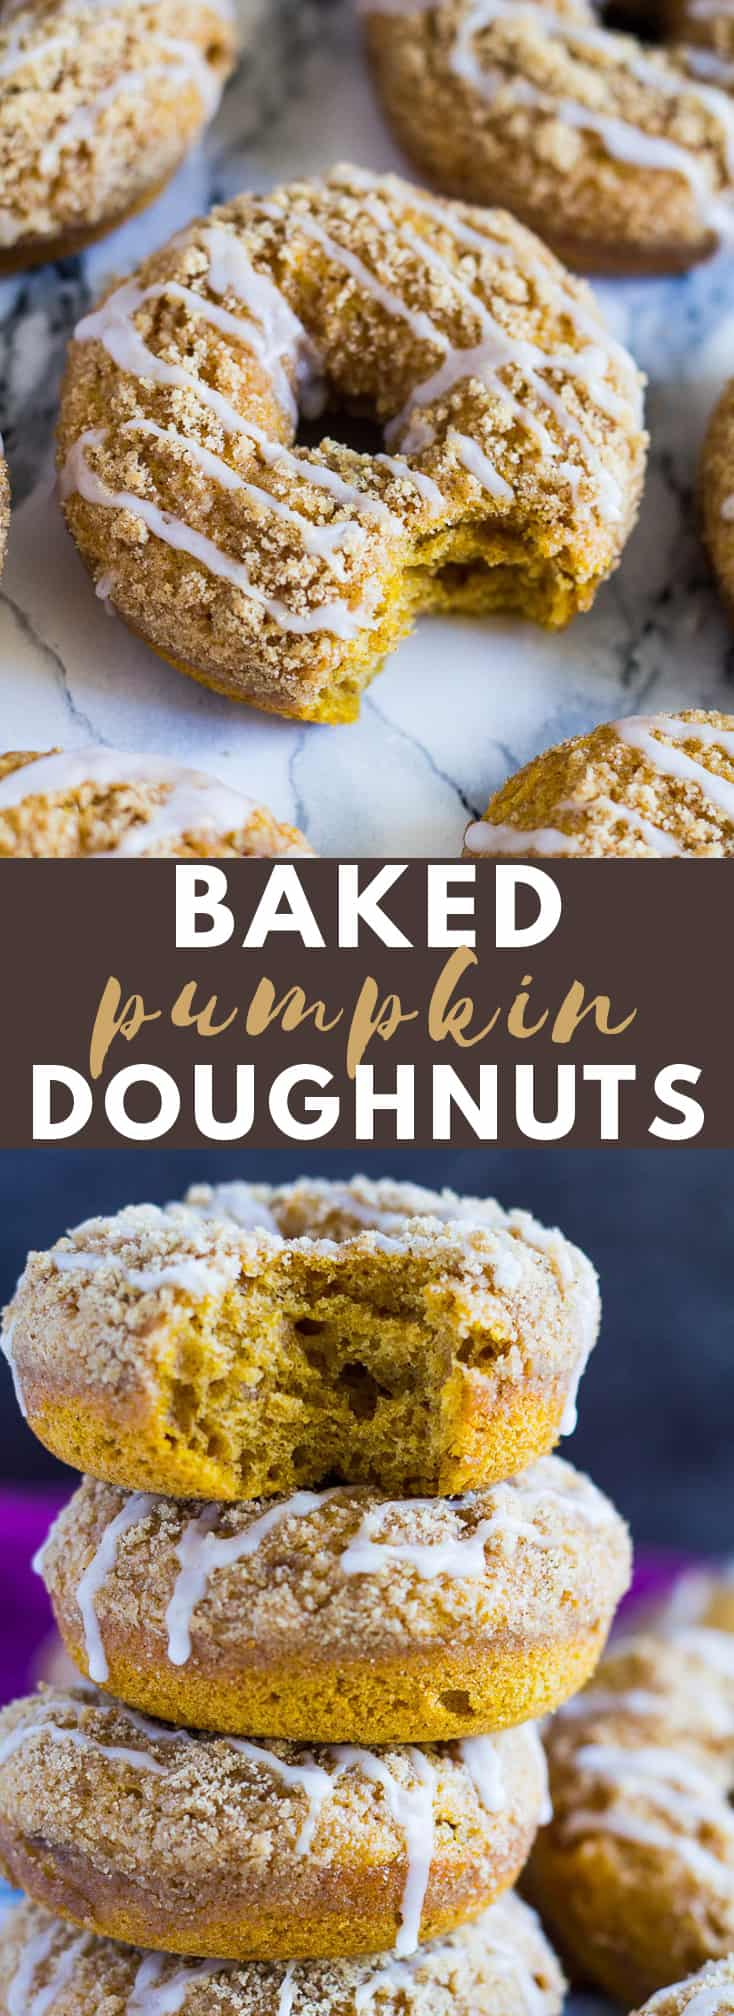 Baked Pumpkin Streusel Doughnuts- Deliciously moist and fluffy spiced pumpkin doughnuts that are BAKED, not fried, topped with a crunchy cinnamon streusel, and drizzled with a sweet glaze! #bakeddonuts #pumpkindonuts #pumpkinrecipes